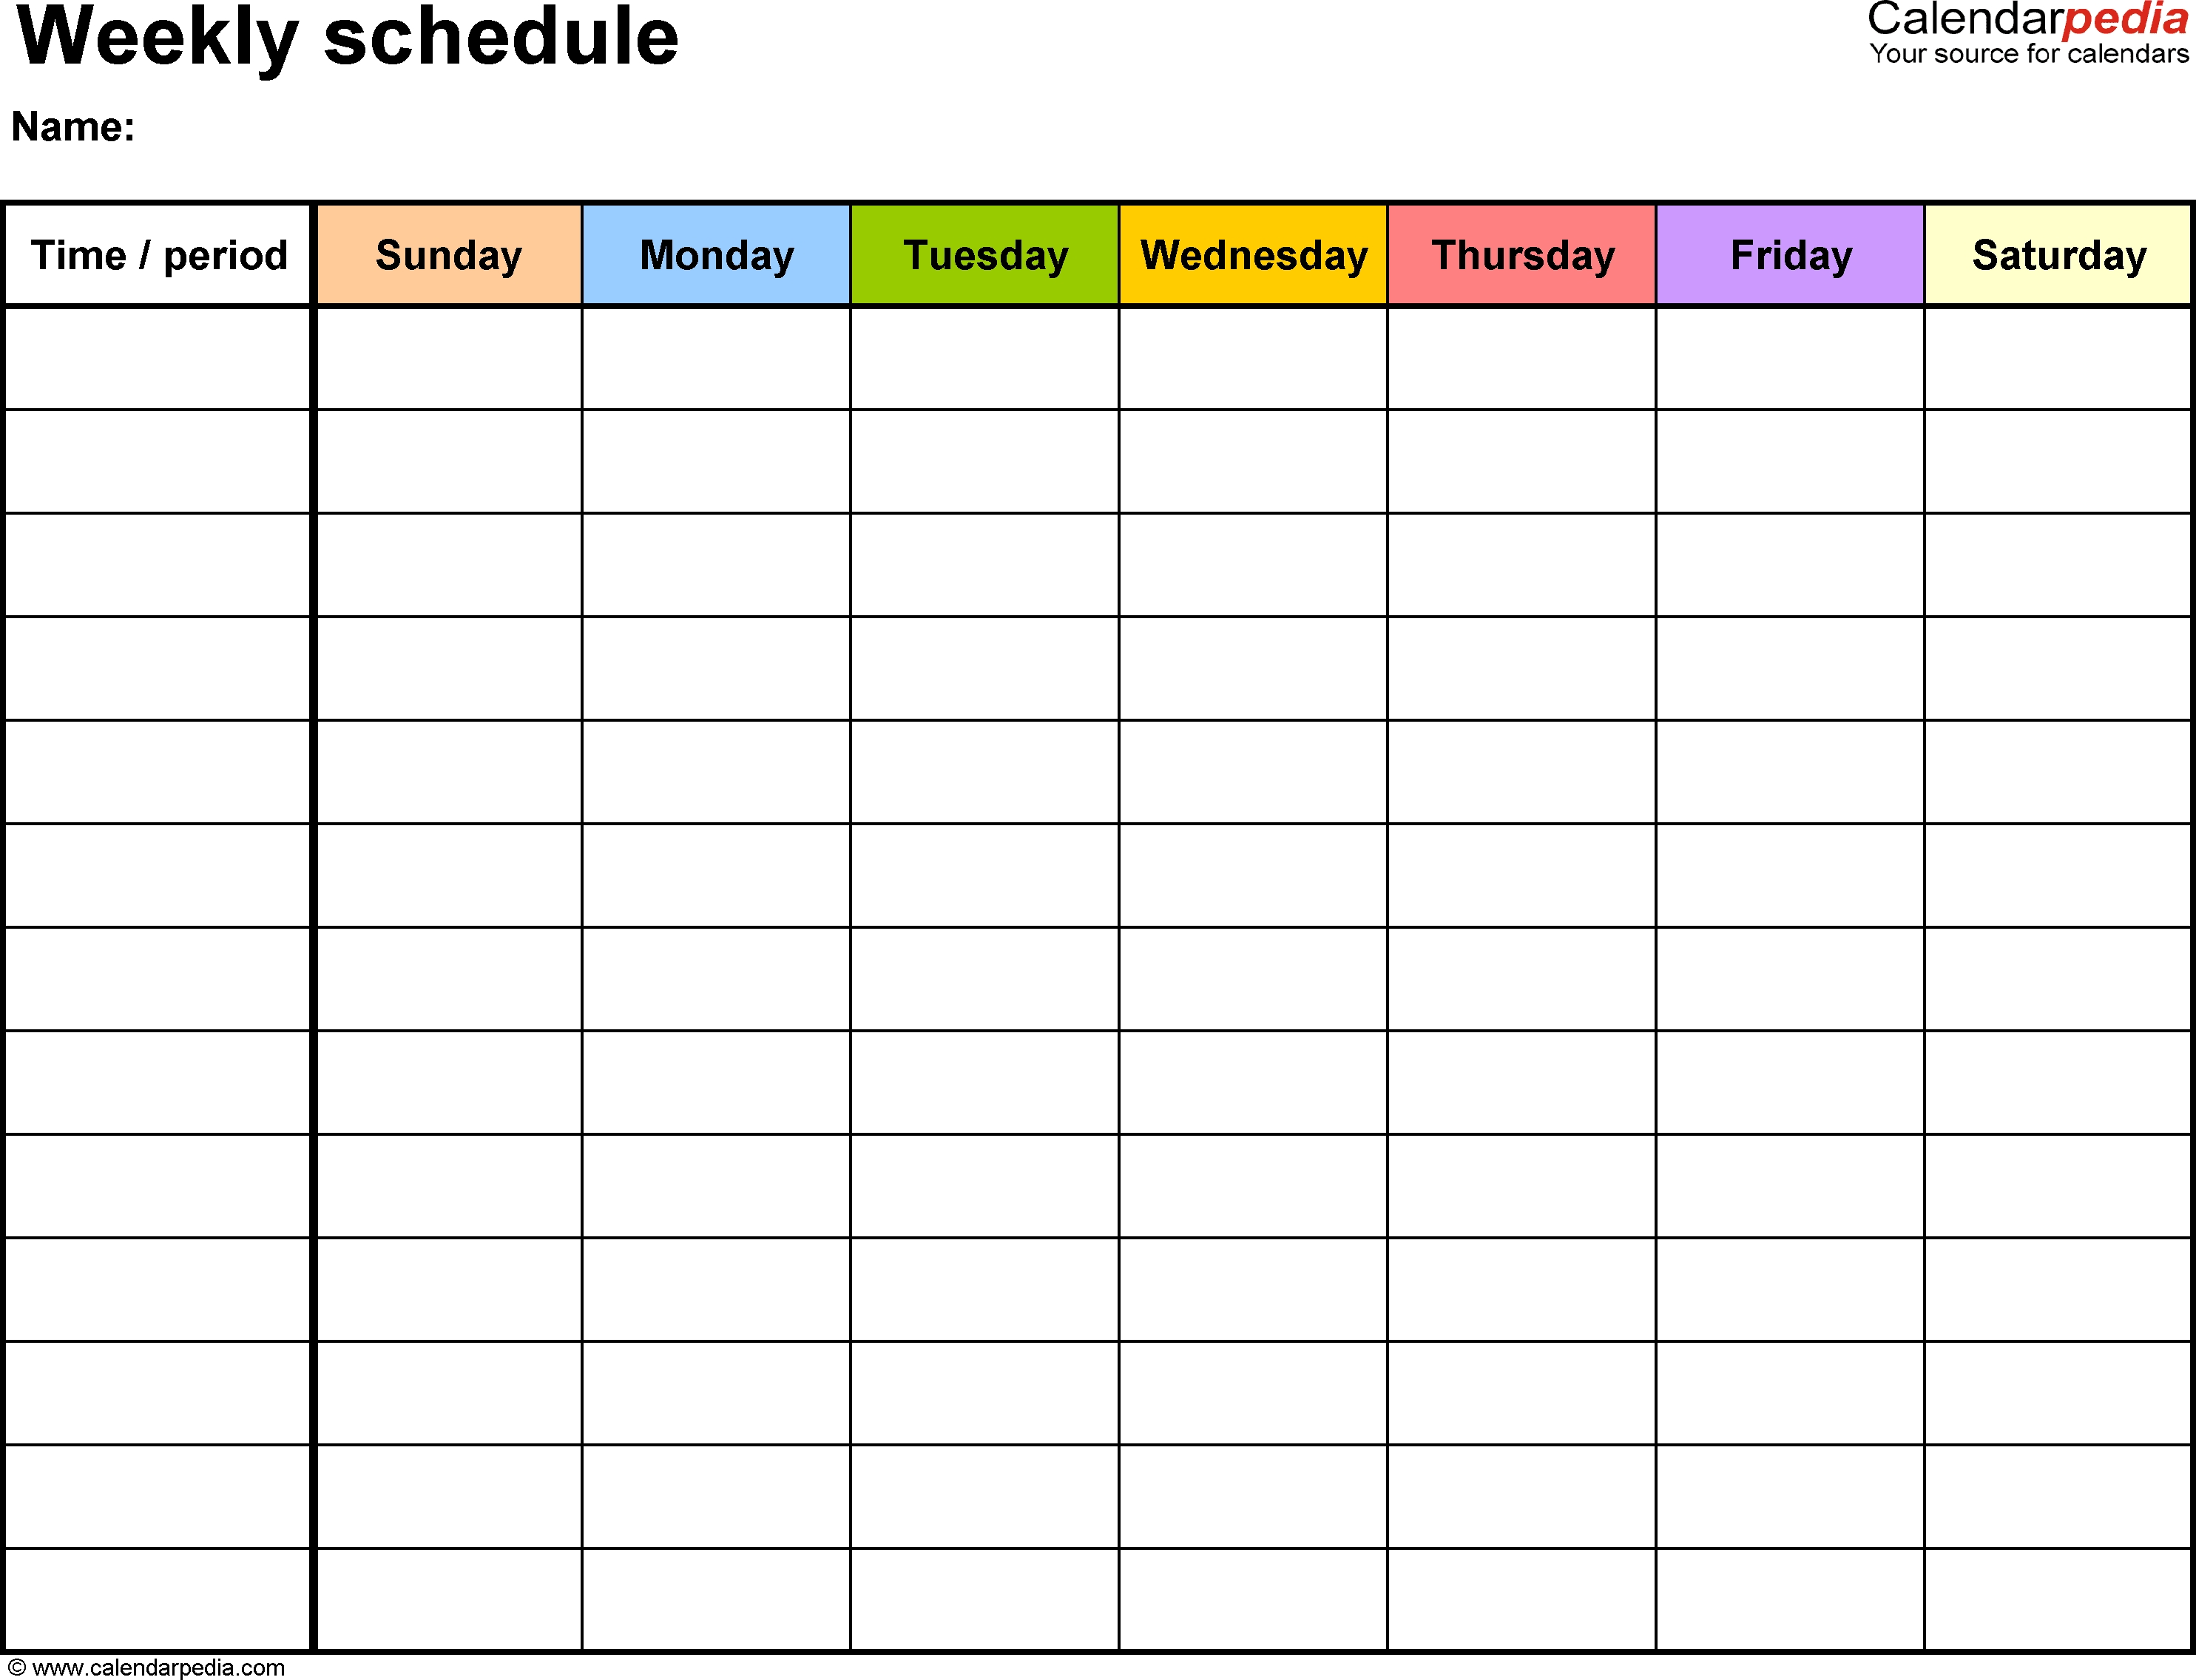 Free Weekly Schedule Templates For Word - 18 Templates intended for Free Seven Day Printable Calendar